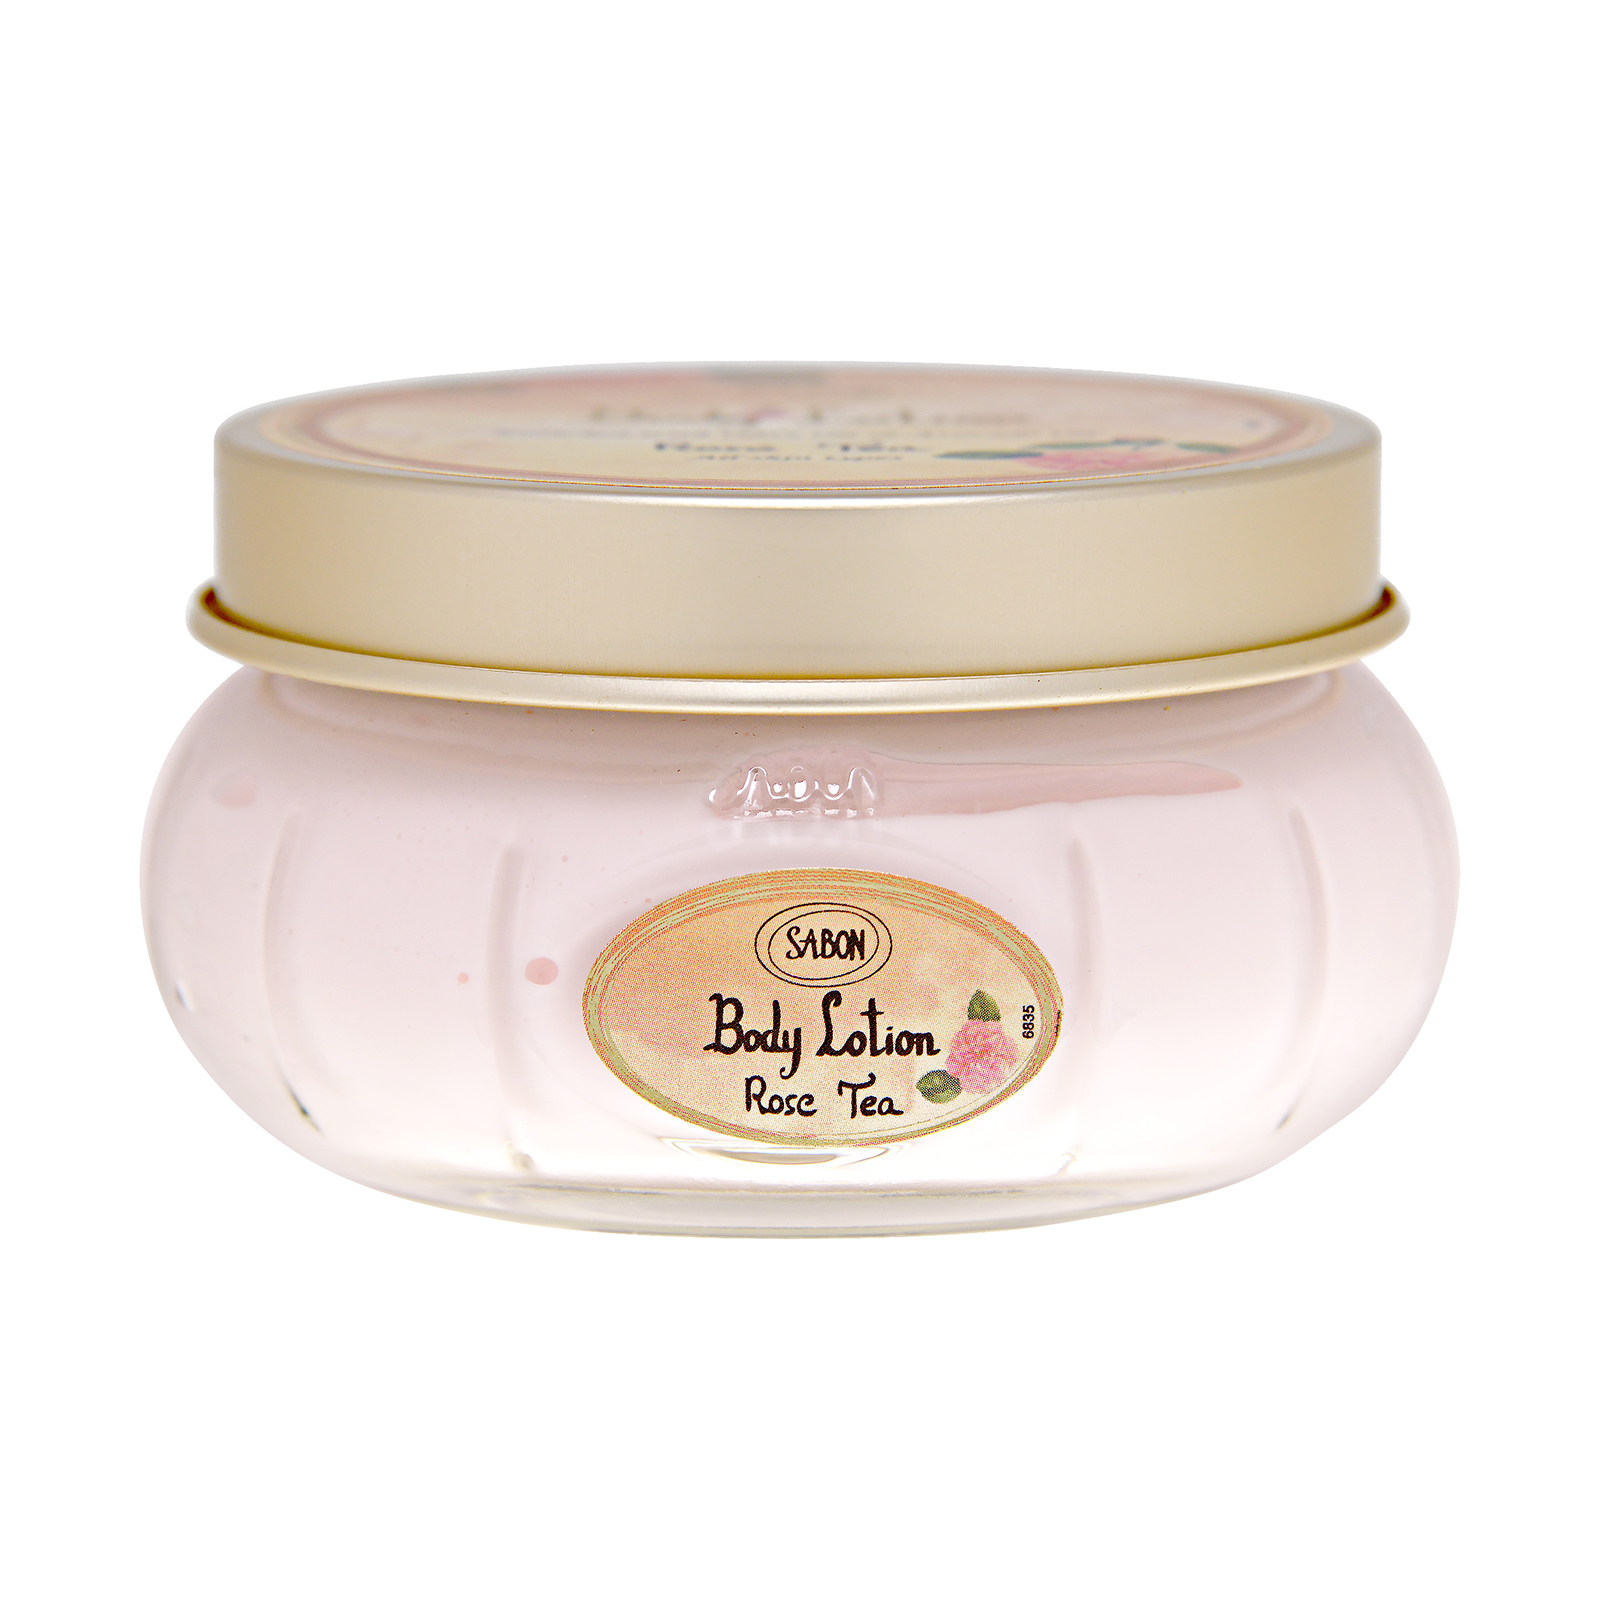 Sabon  Body Lotion (Jar) Rose Tea, 7oz, 200ml